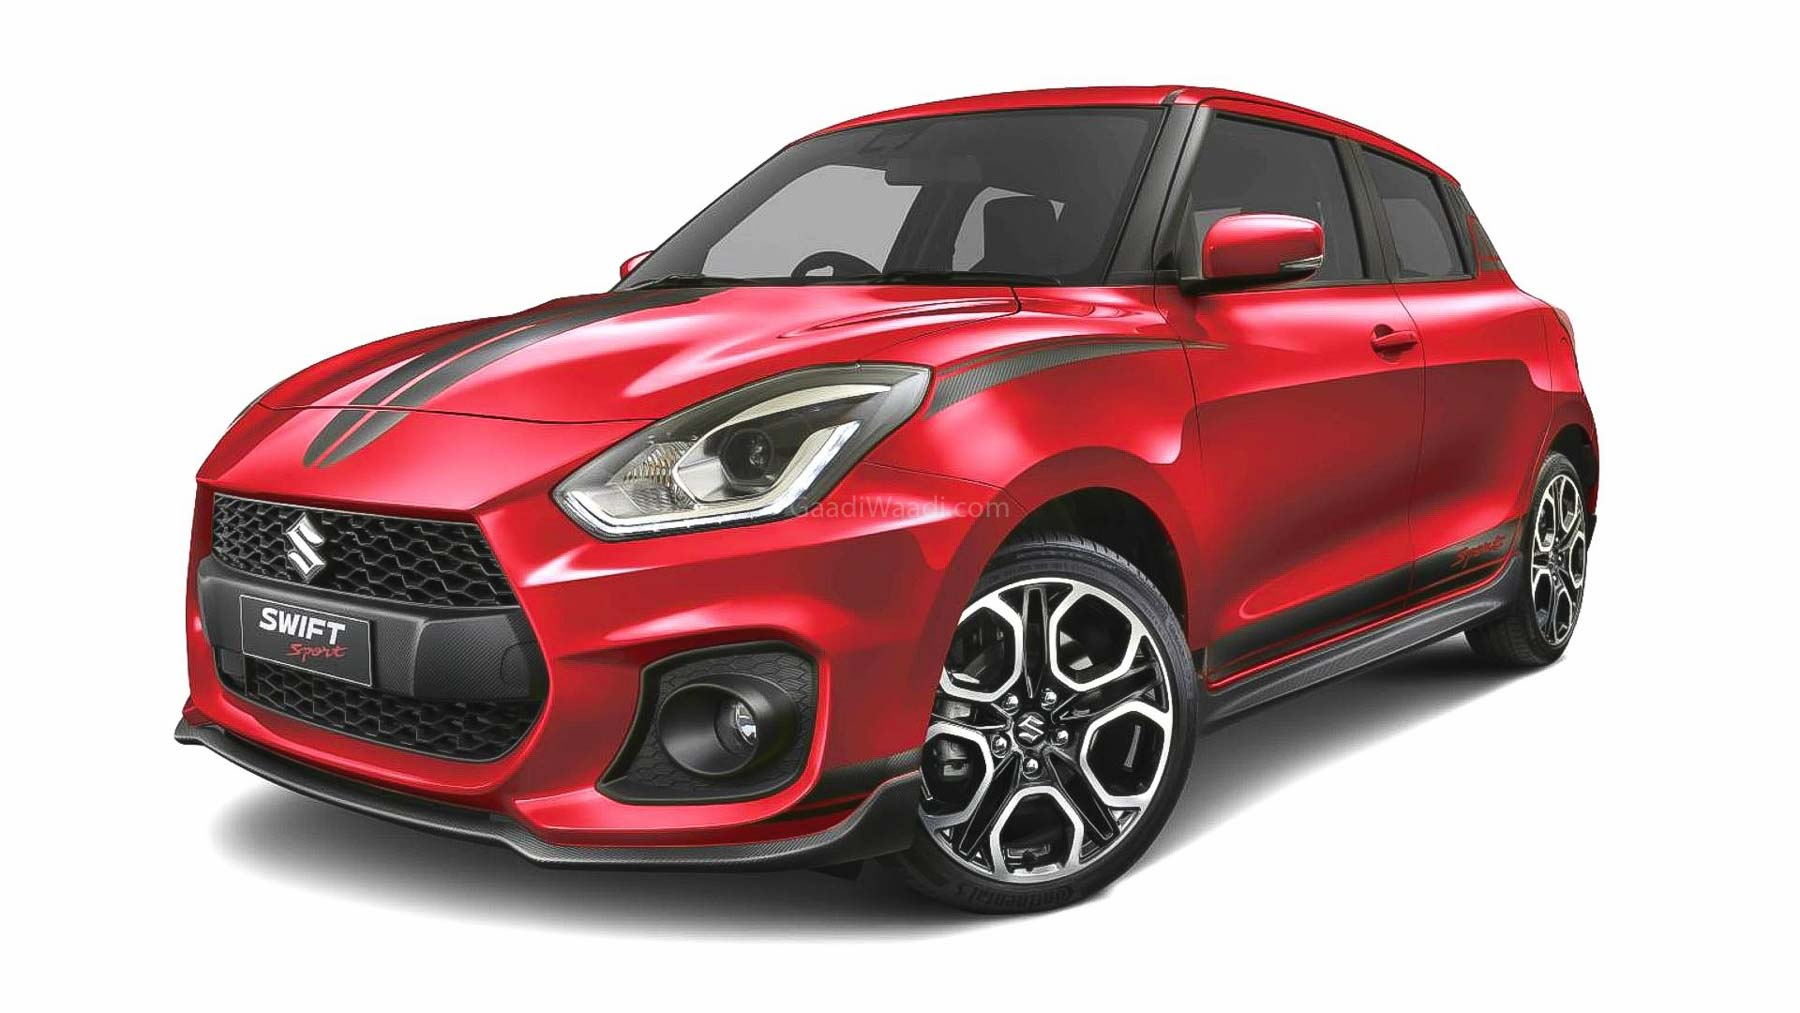 140 PS Swift Sport Spotted Undisguised In India Fueling Launch Rumours